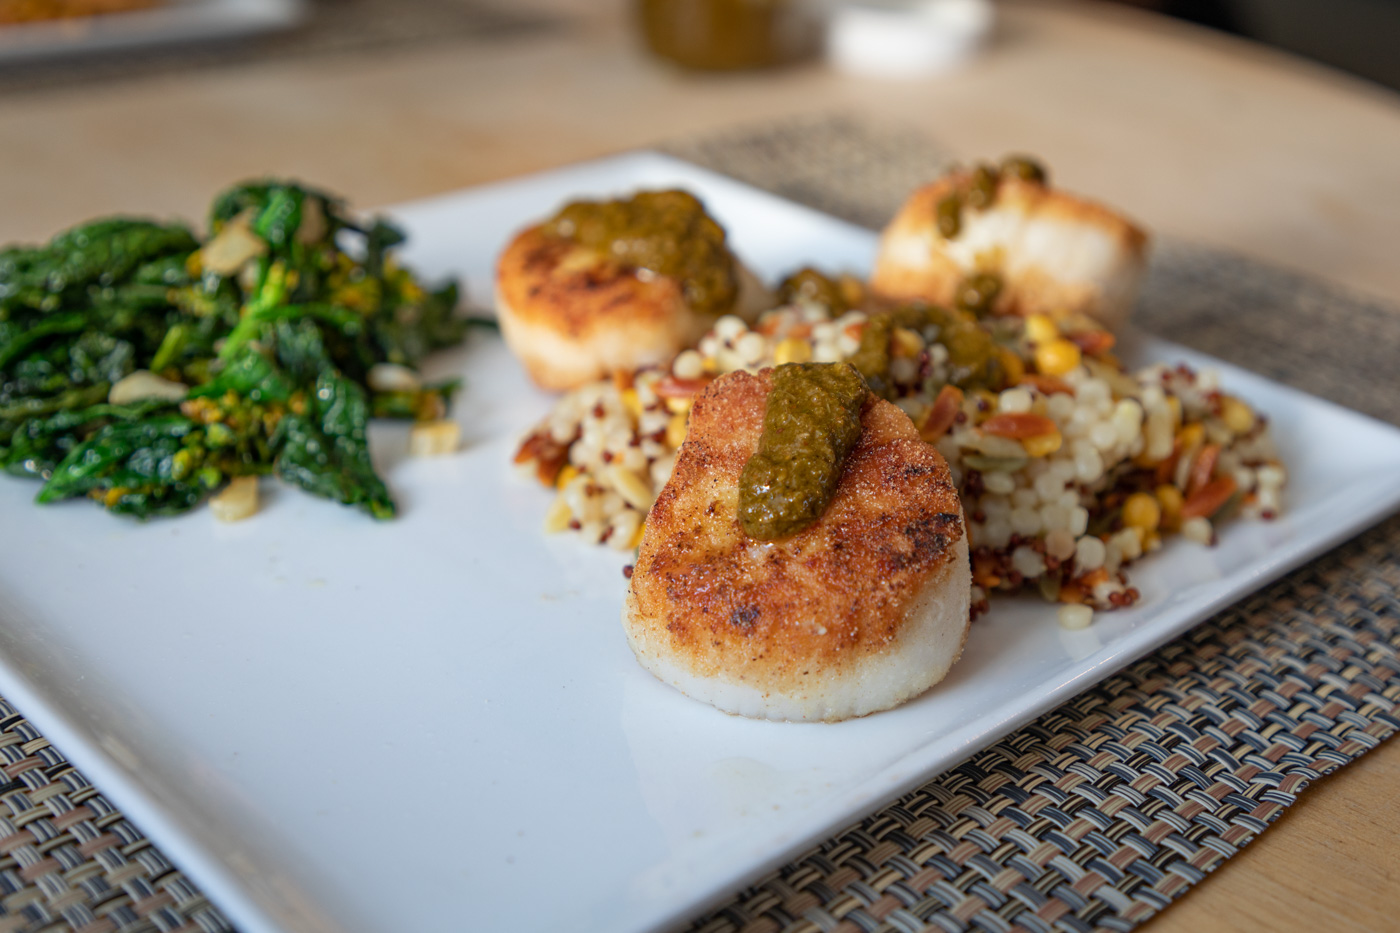 Scallops with Green Harissa, Harvest Grains, and Kale Raab